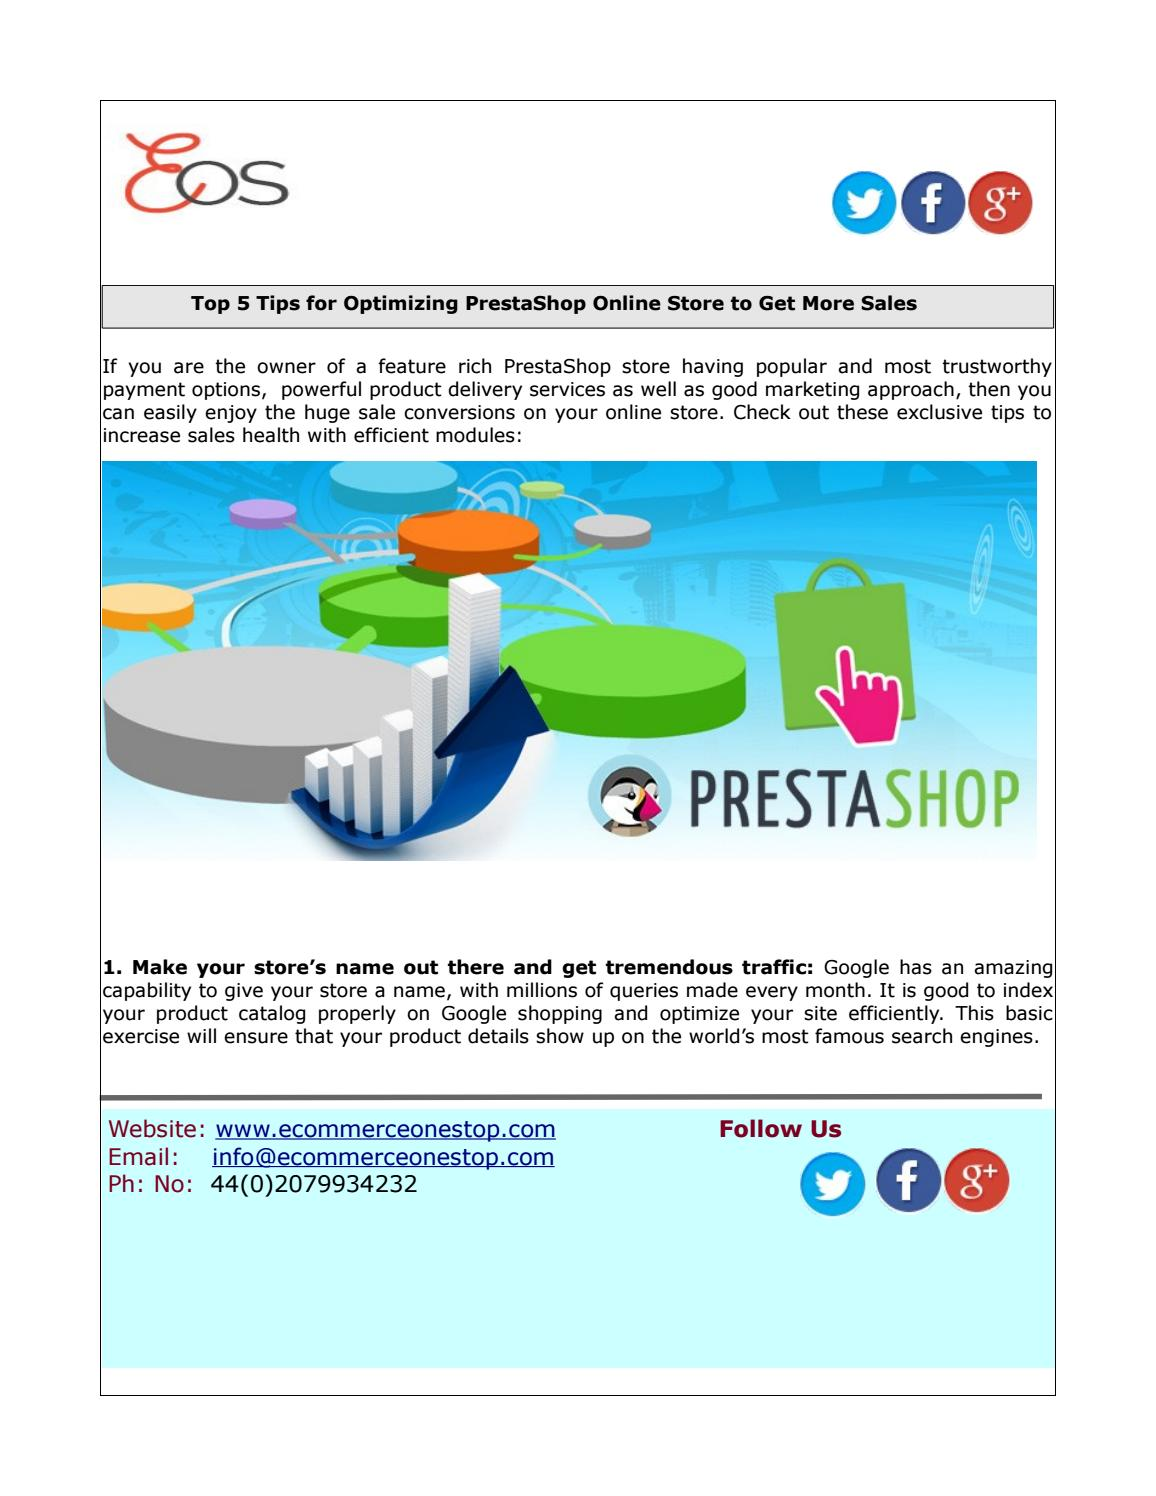 No Name Online Shop Top 5 Tips For Optimizing Prestashop Online Store To Get More Sales